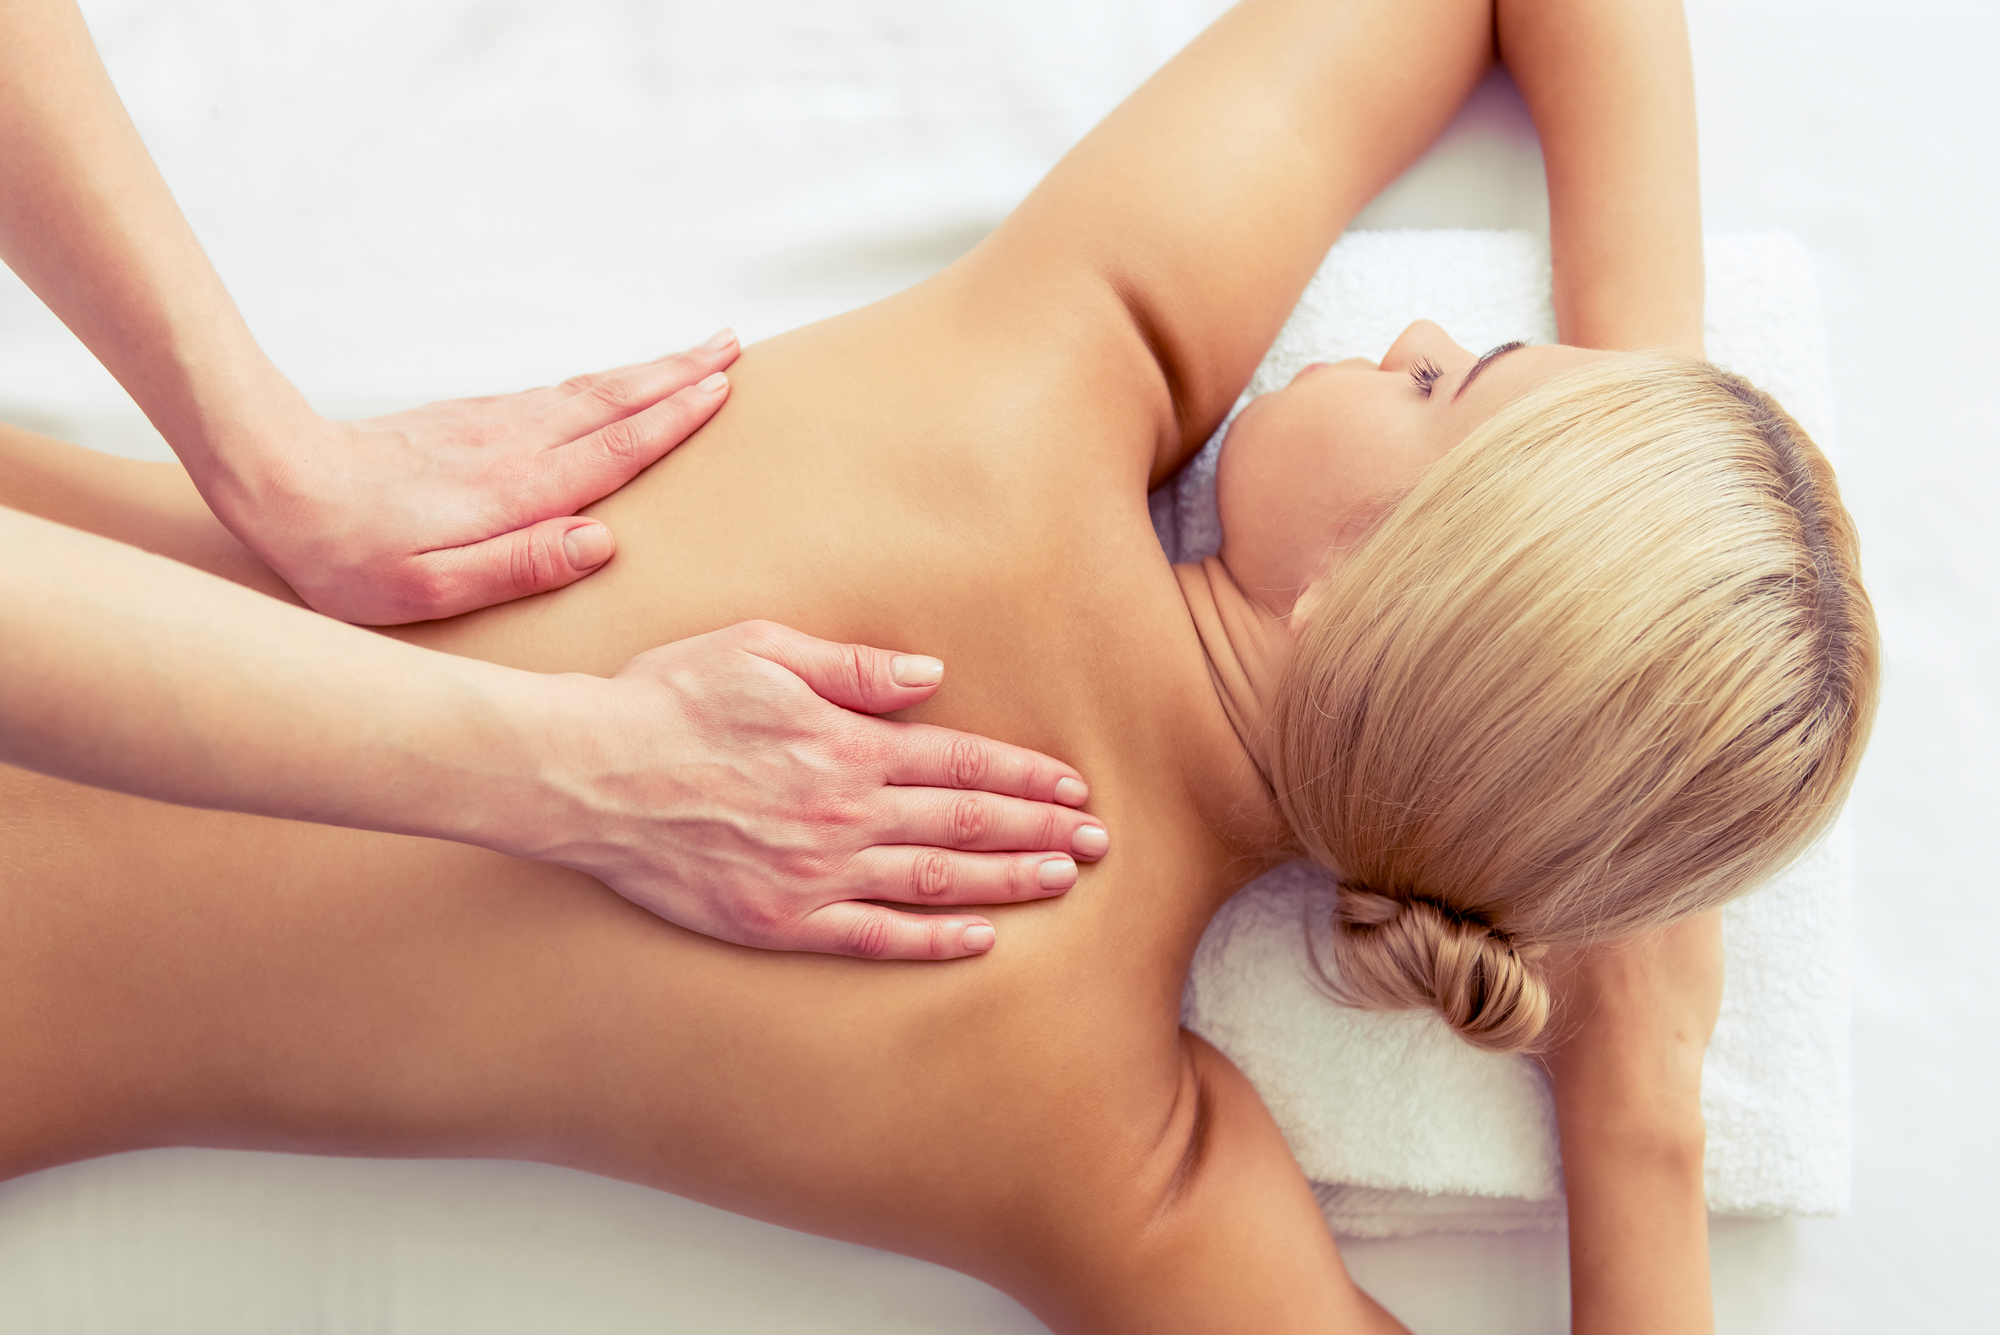 A new study has investigated the physiological effects of massages, and how they impact the body's natural stress-fighting systems